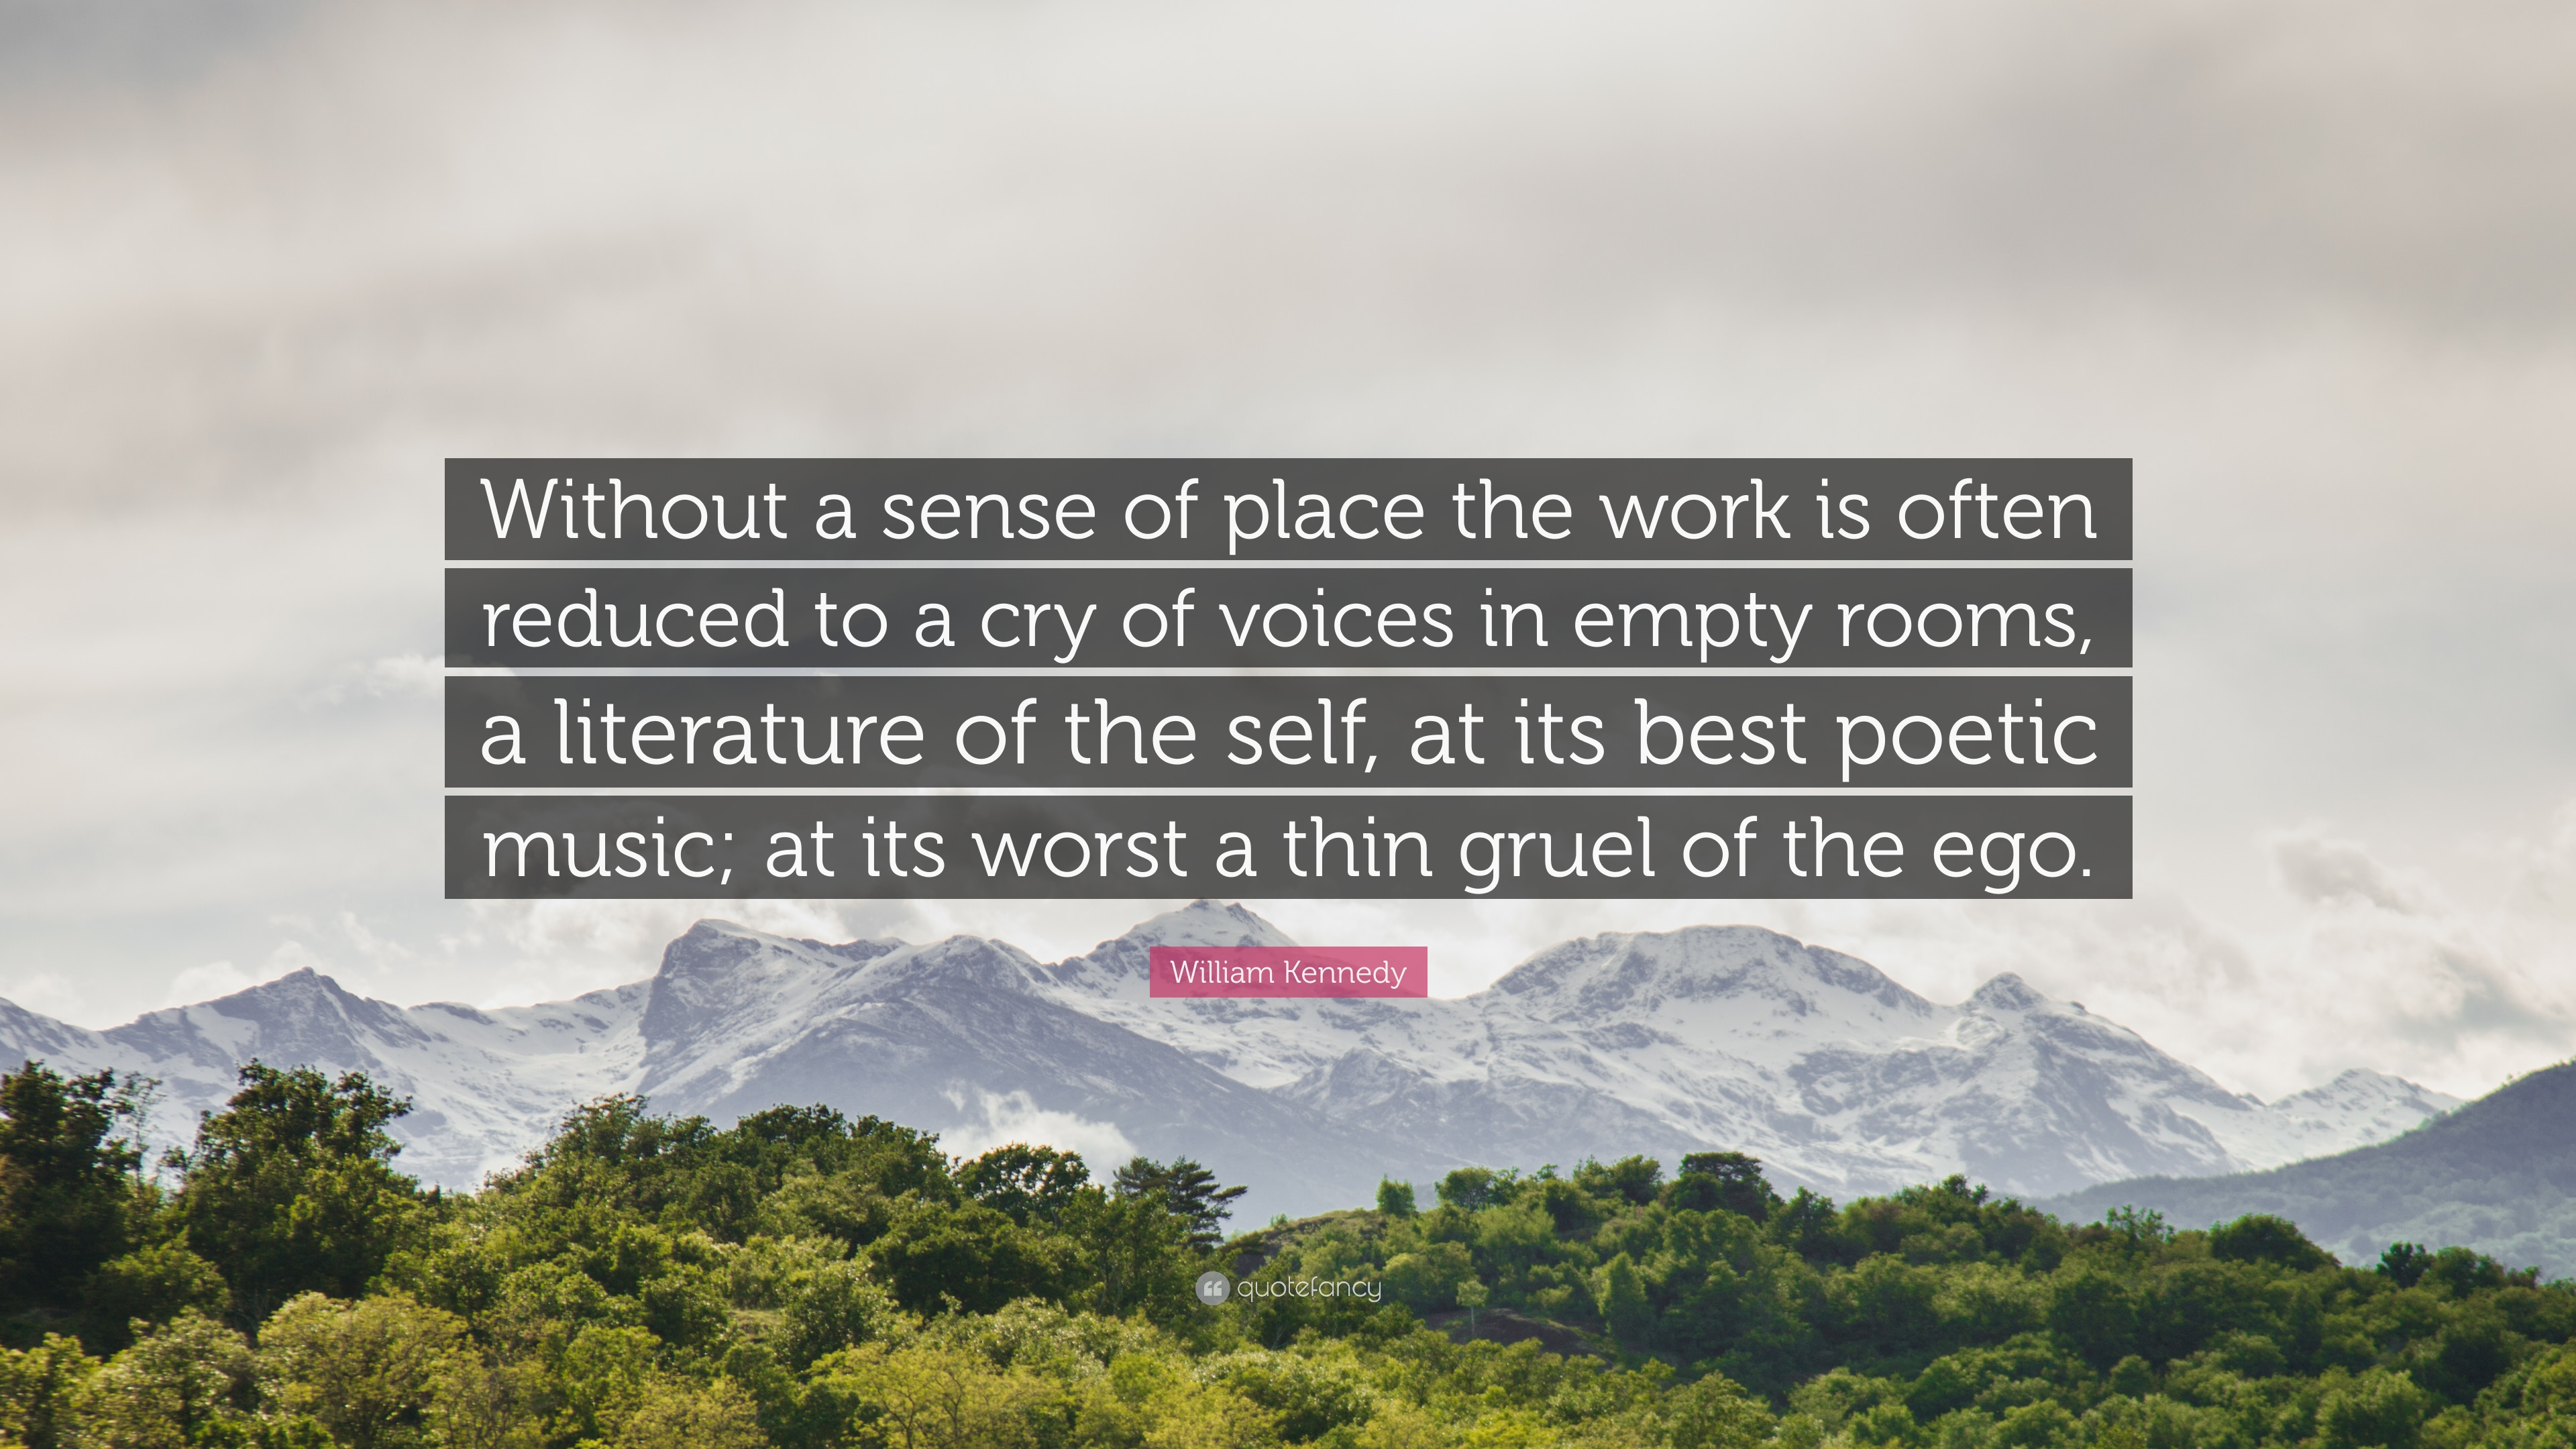 William Kennedy Quote: \u201cWithout a sense of place the work is often ...